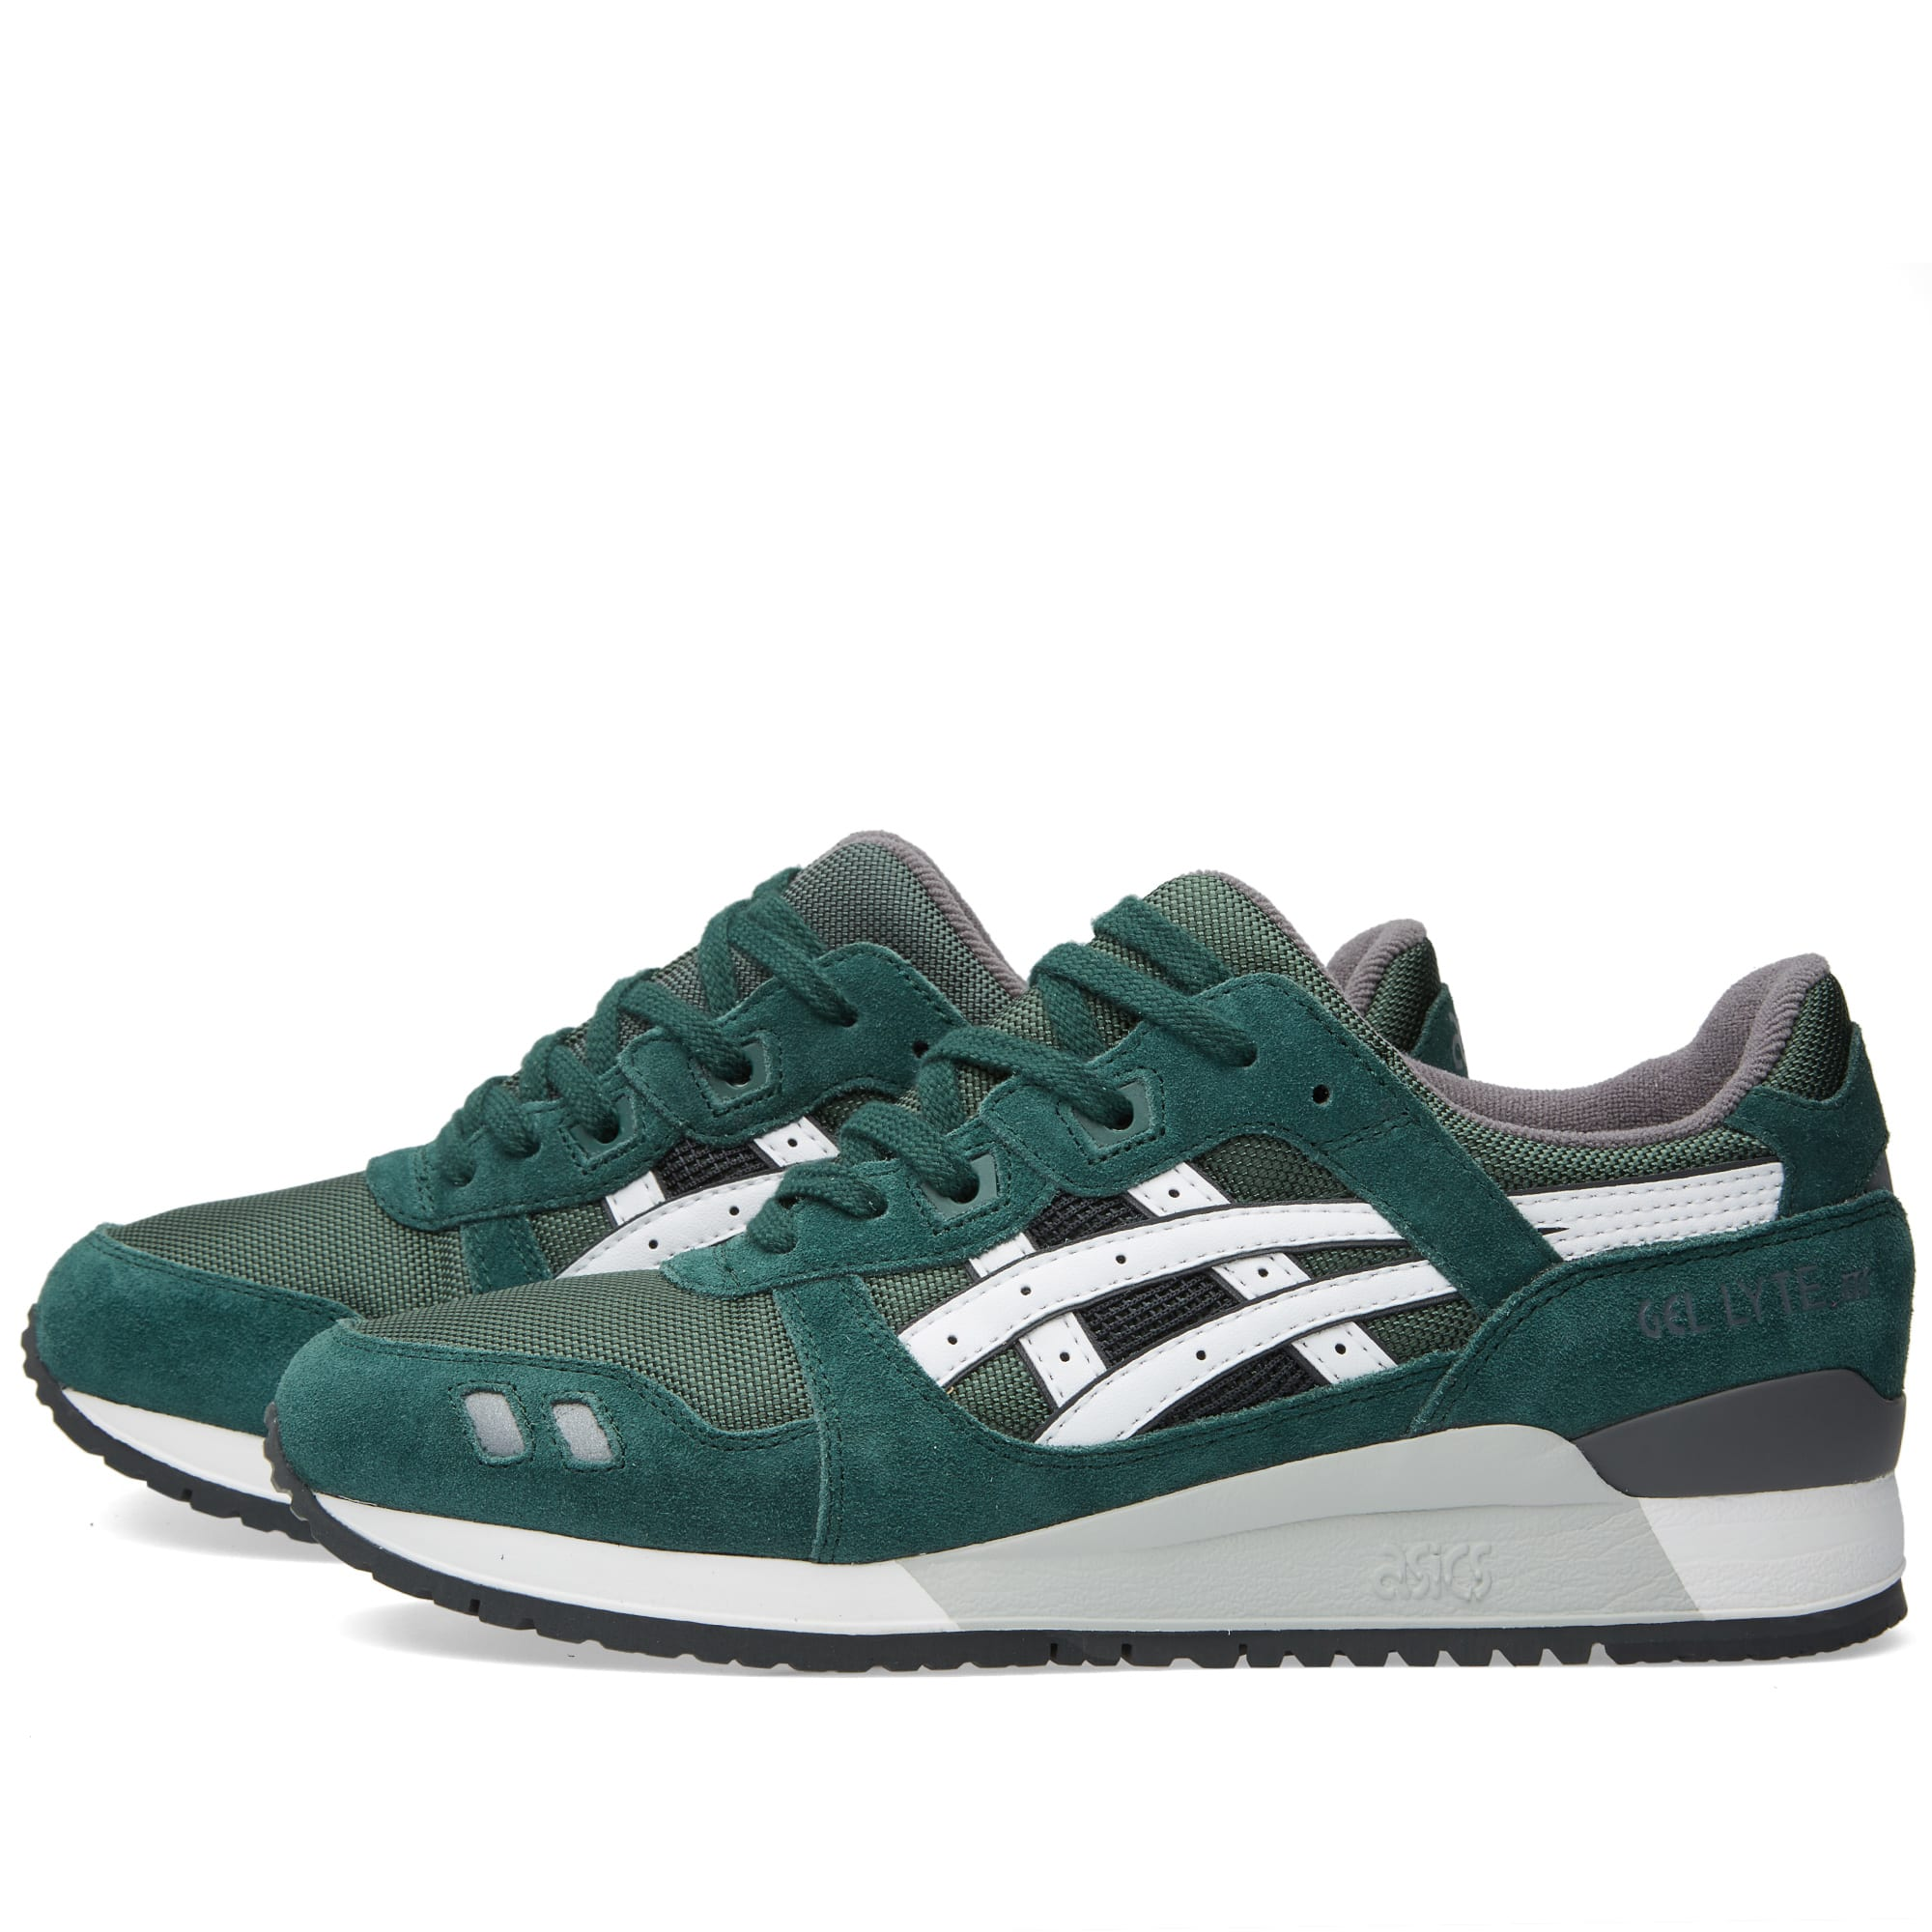 ASICS Gel Lyte III Varsity Dark Green White